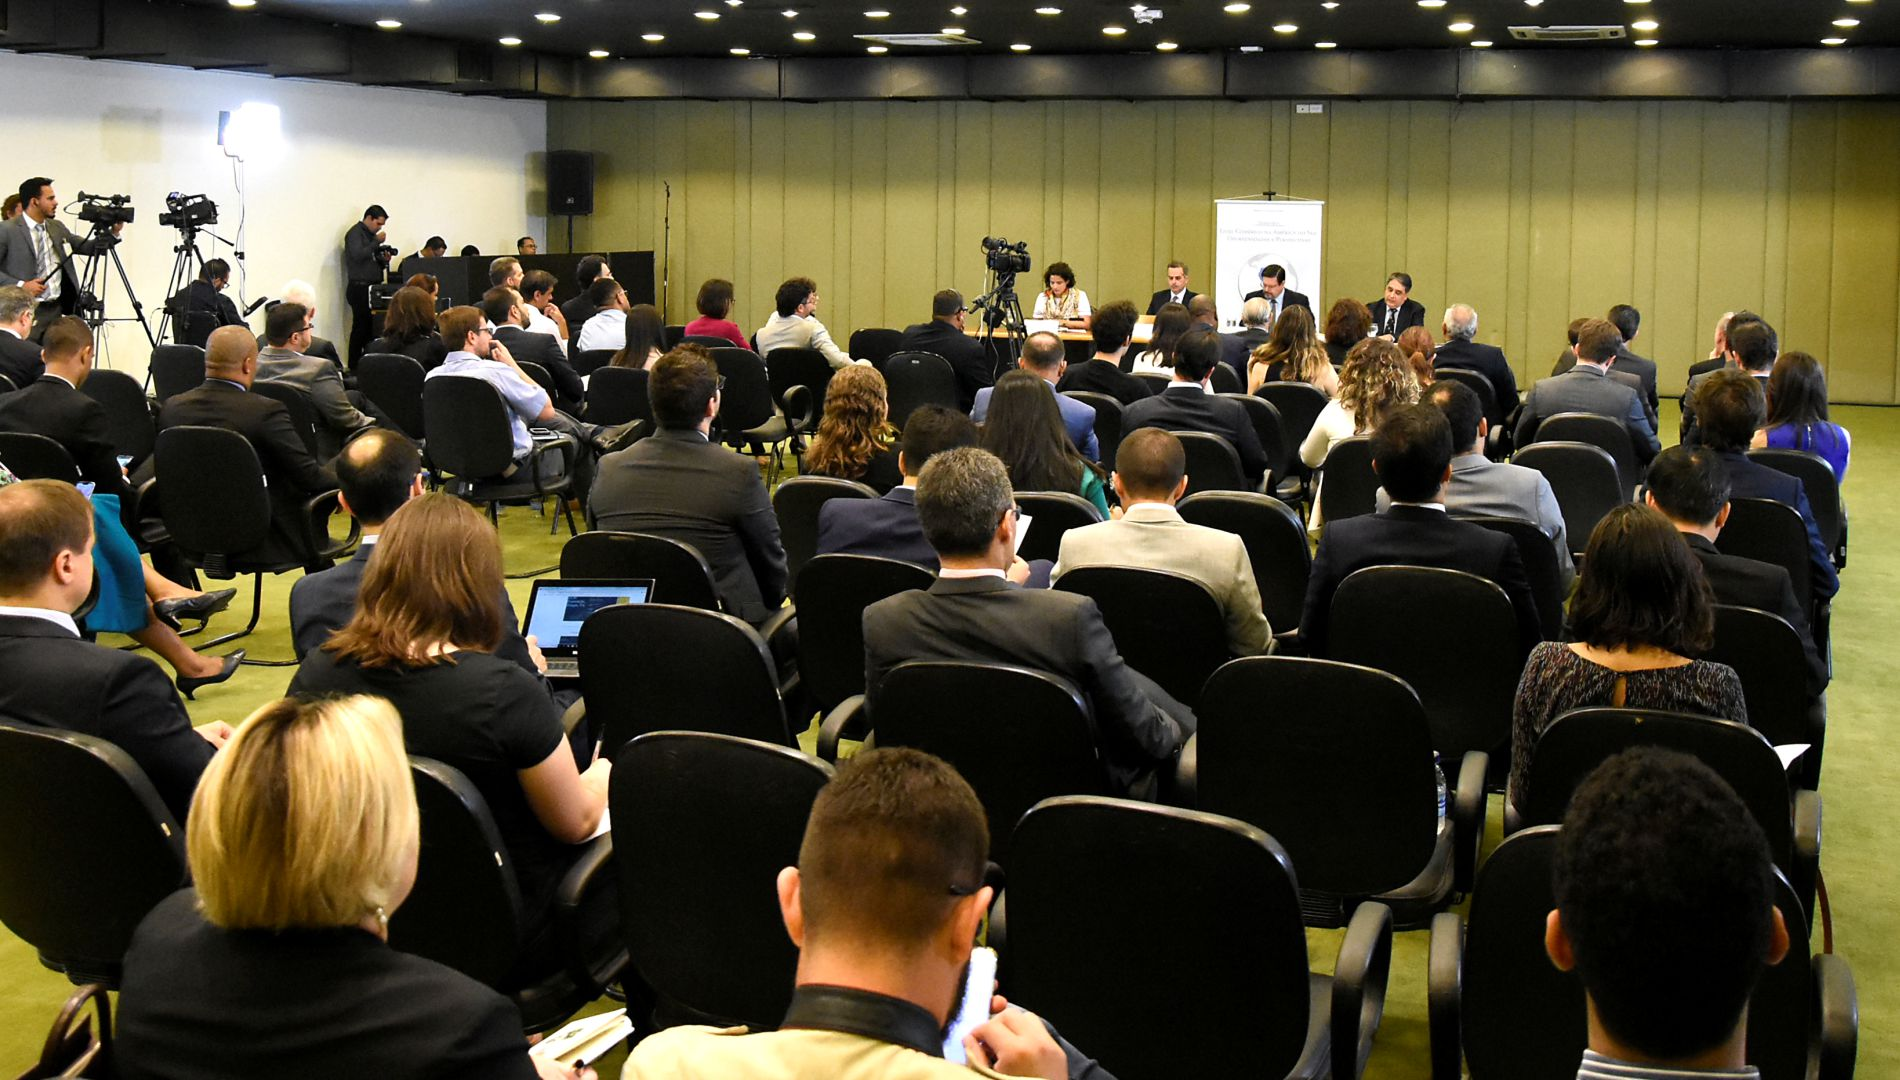 Itamaraty and FUNAG hold seminar on free trade in South America: opportunities and prospects